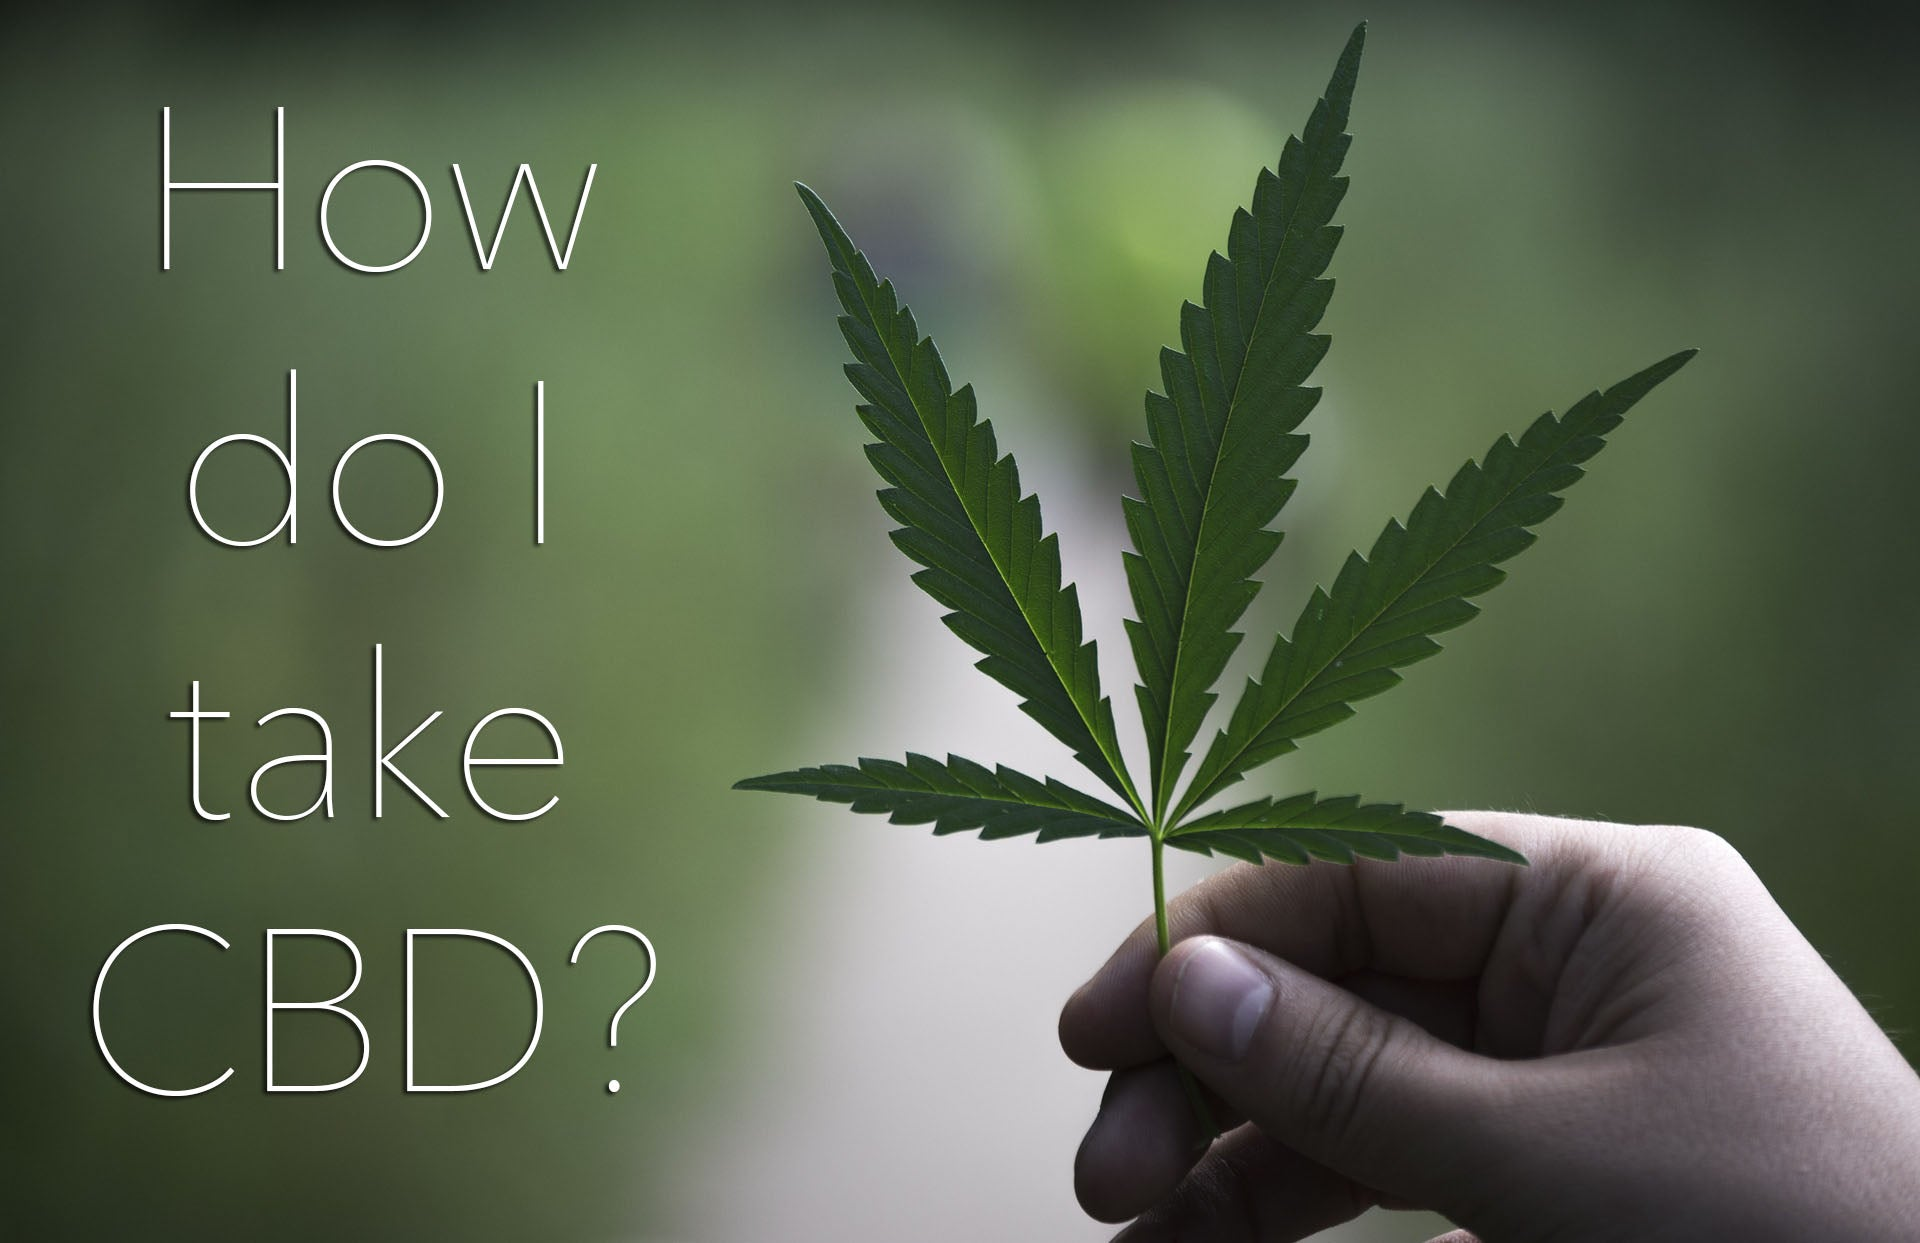 How do I take cbd Oil consumption